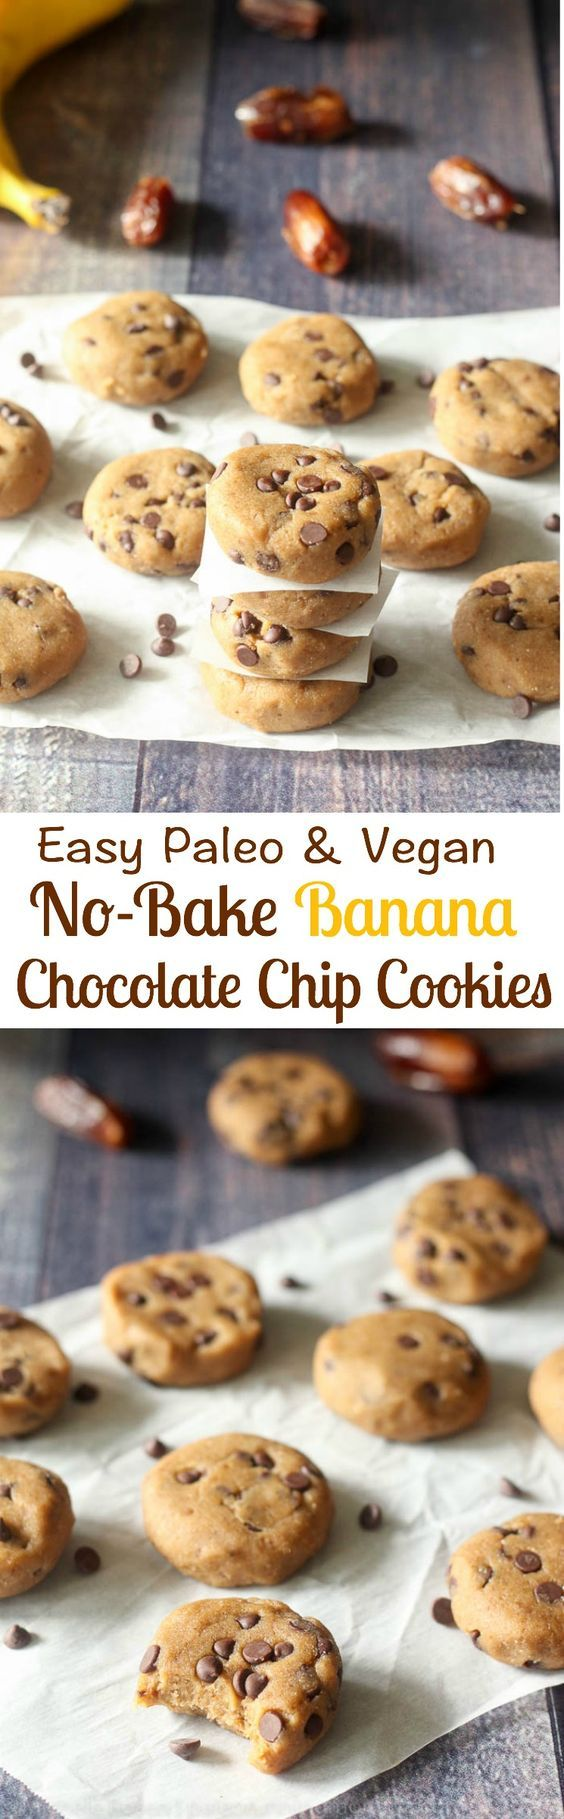 Easy Paleo and vegan no bake banana chocolate chip cookies, naturally sweetened with dates with cashew butter and coconut flour for the perfect cookie dough texture!